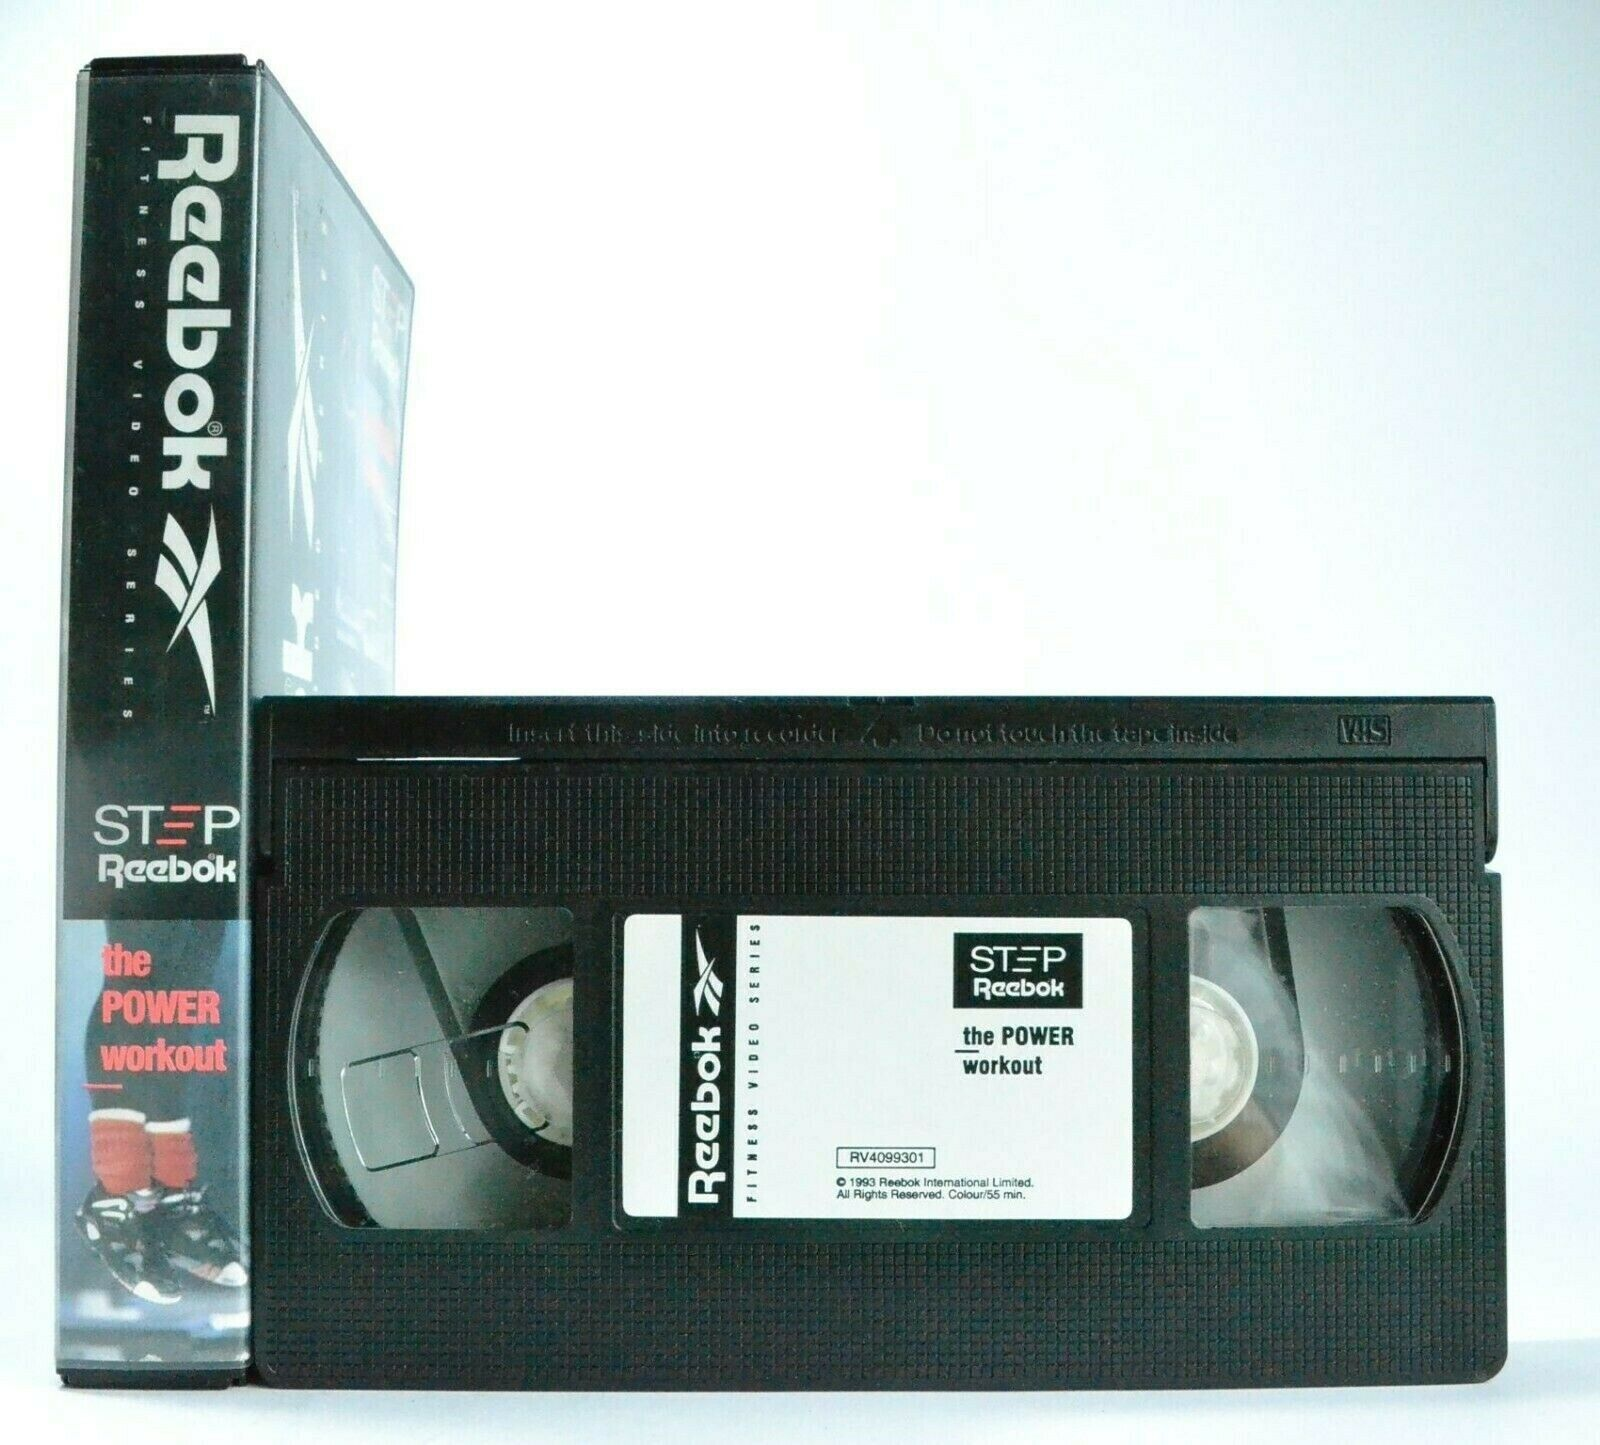 Reebok: Fitness Video Series - By Gin Miller - Power Workout - Exercises - VHS